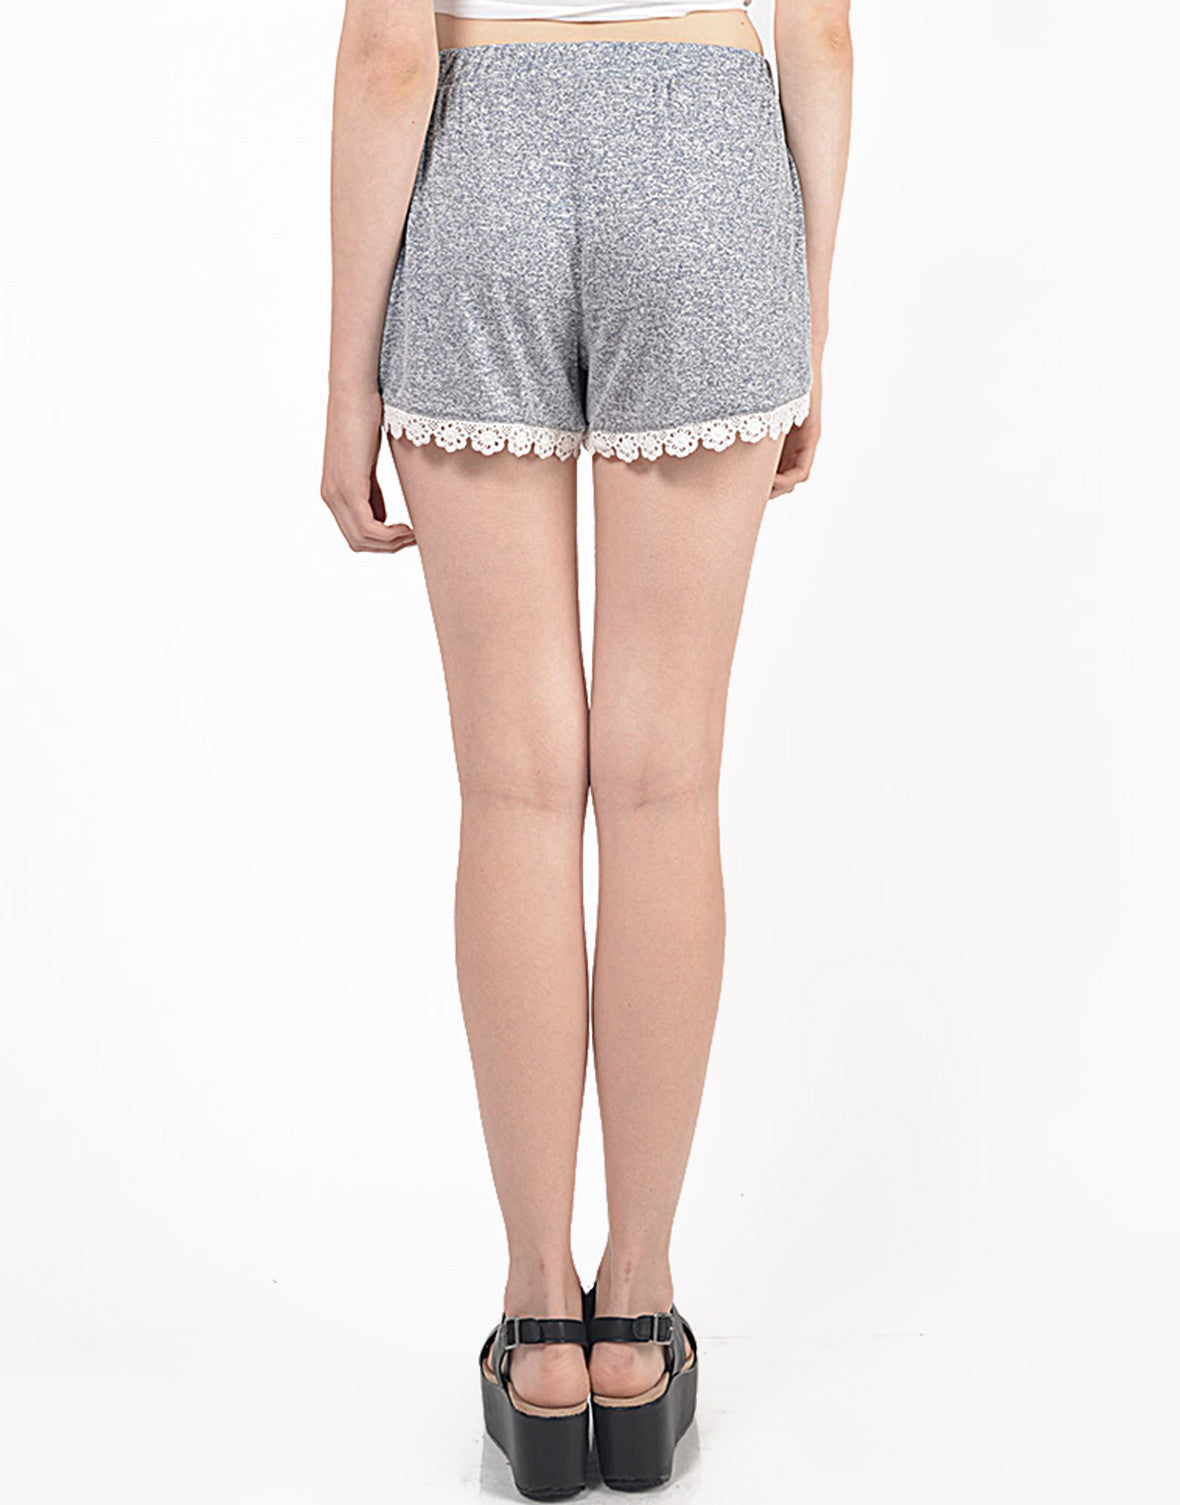 Back View of Crochet Lounge Shorts